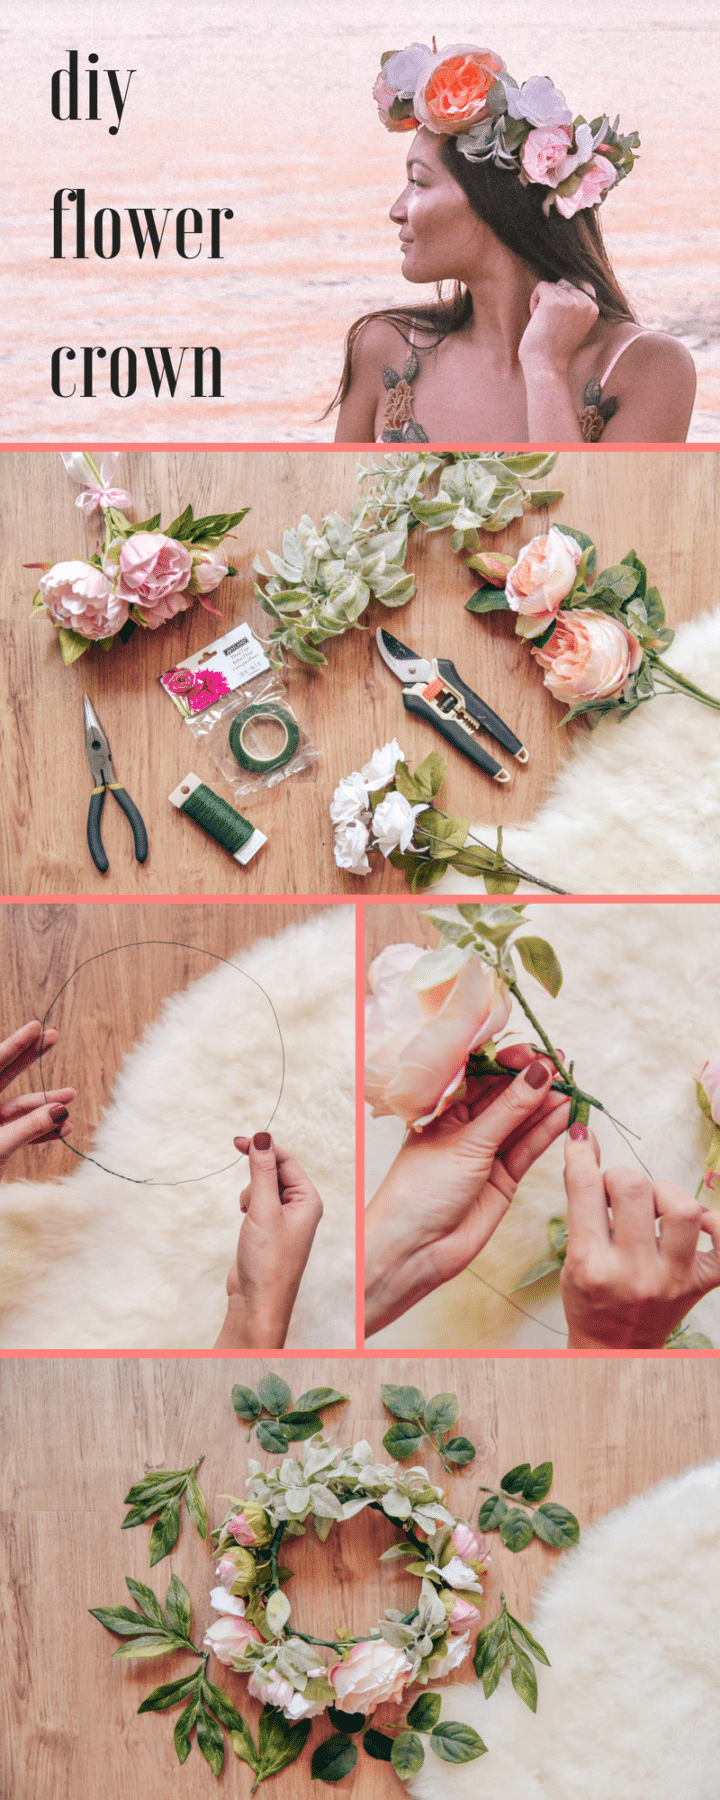 How To Make An Instagram Perfect Flower Crown Jasmine Alley